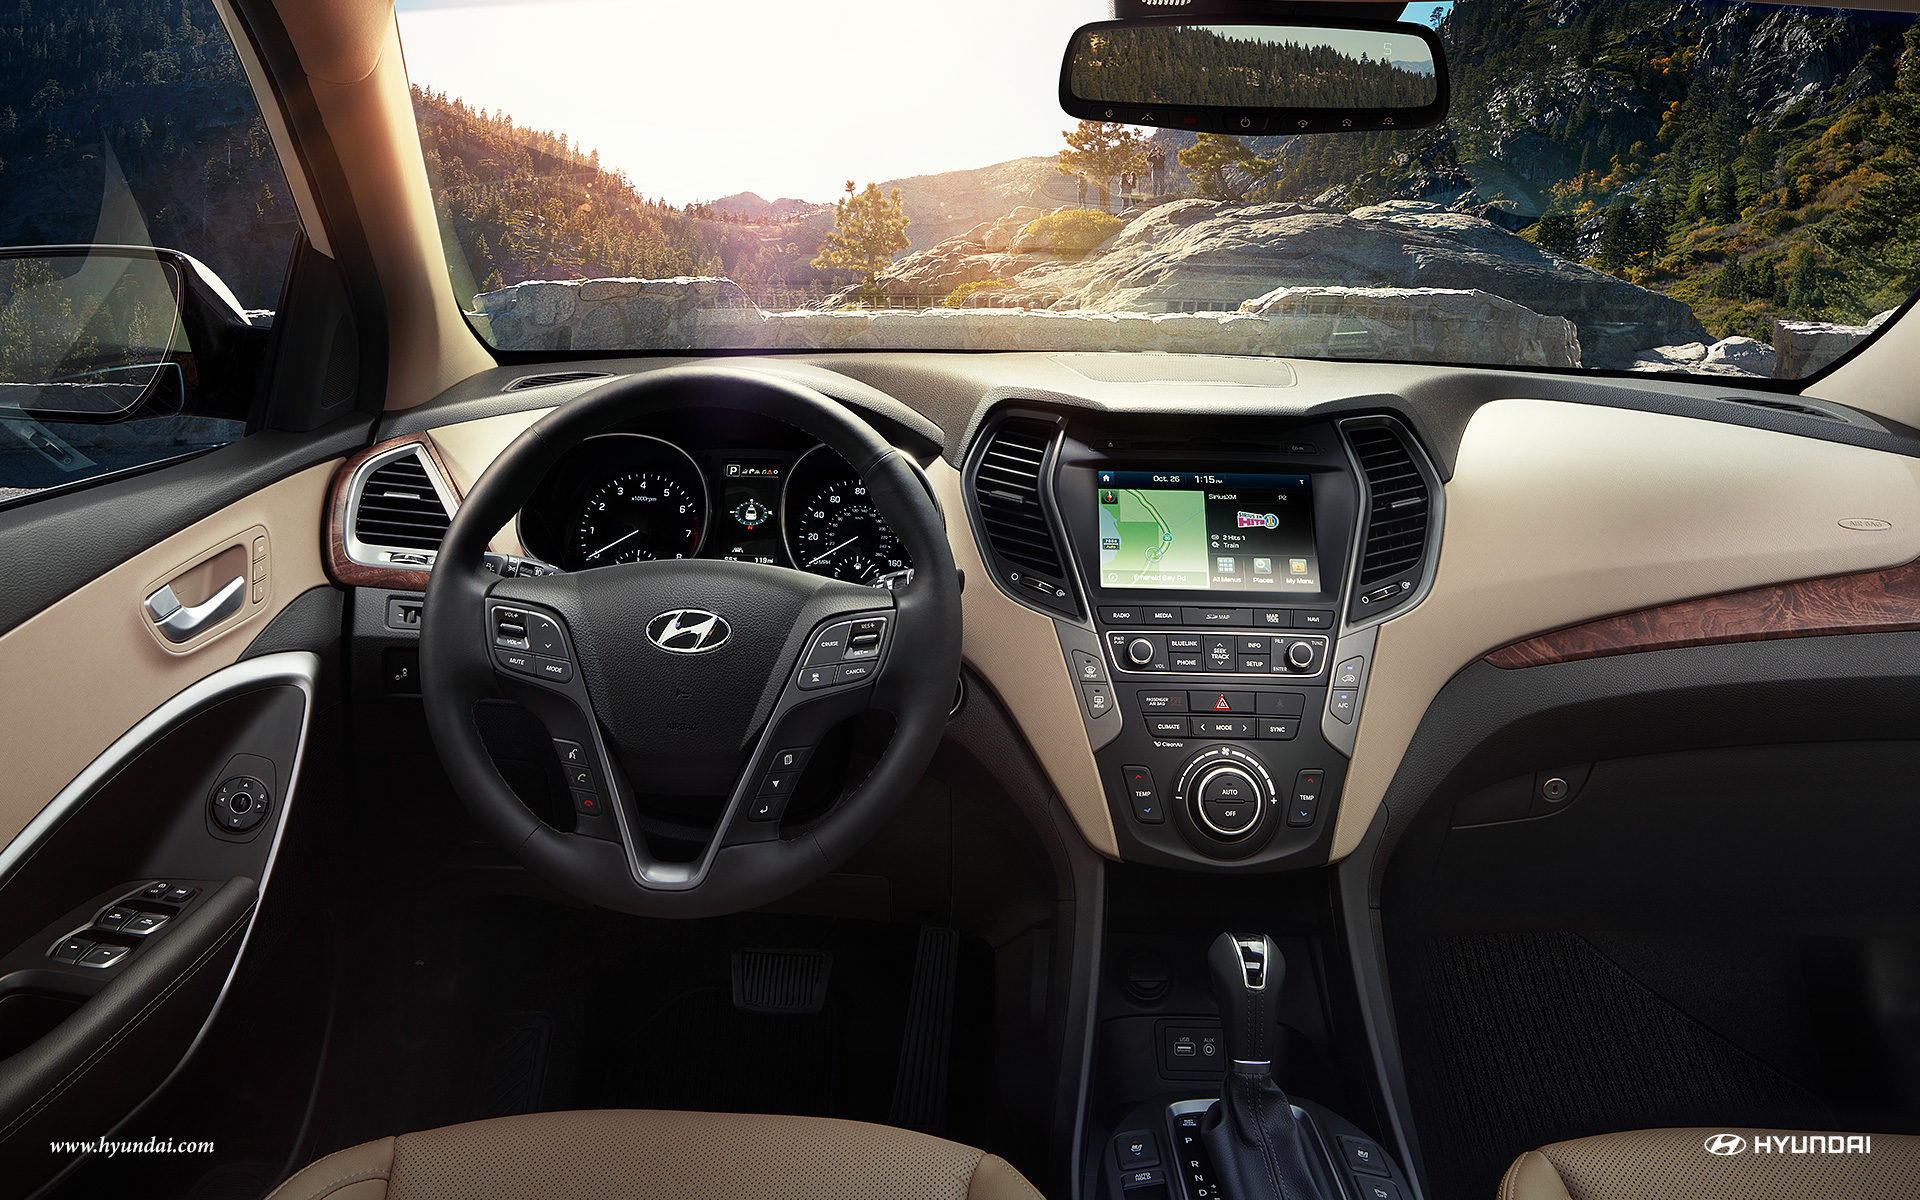 Hyundai Elantra: Using the transmitter (if equipped)